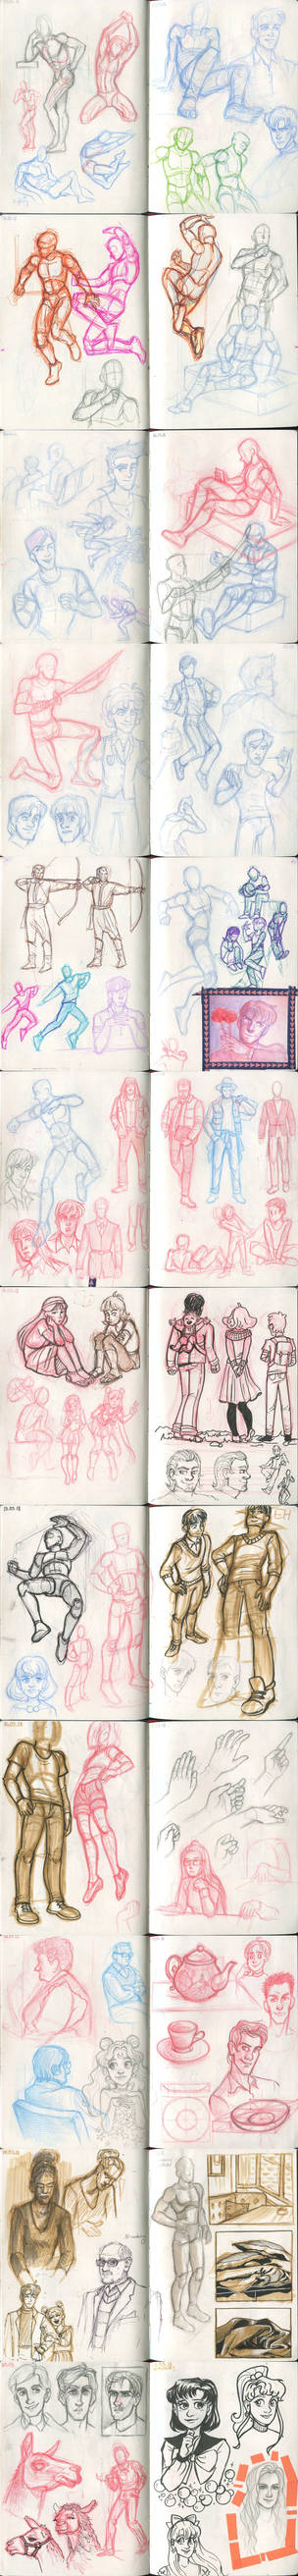 My sketchbook 44